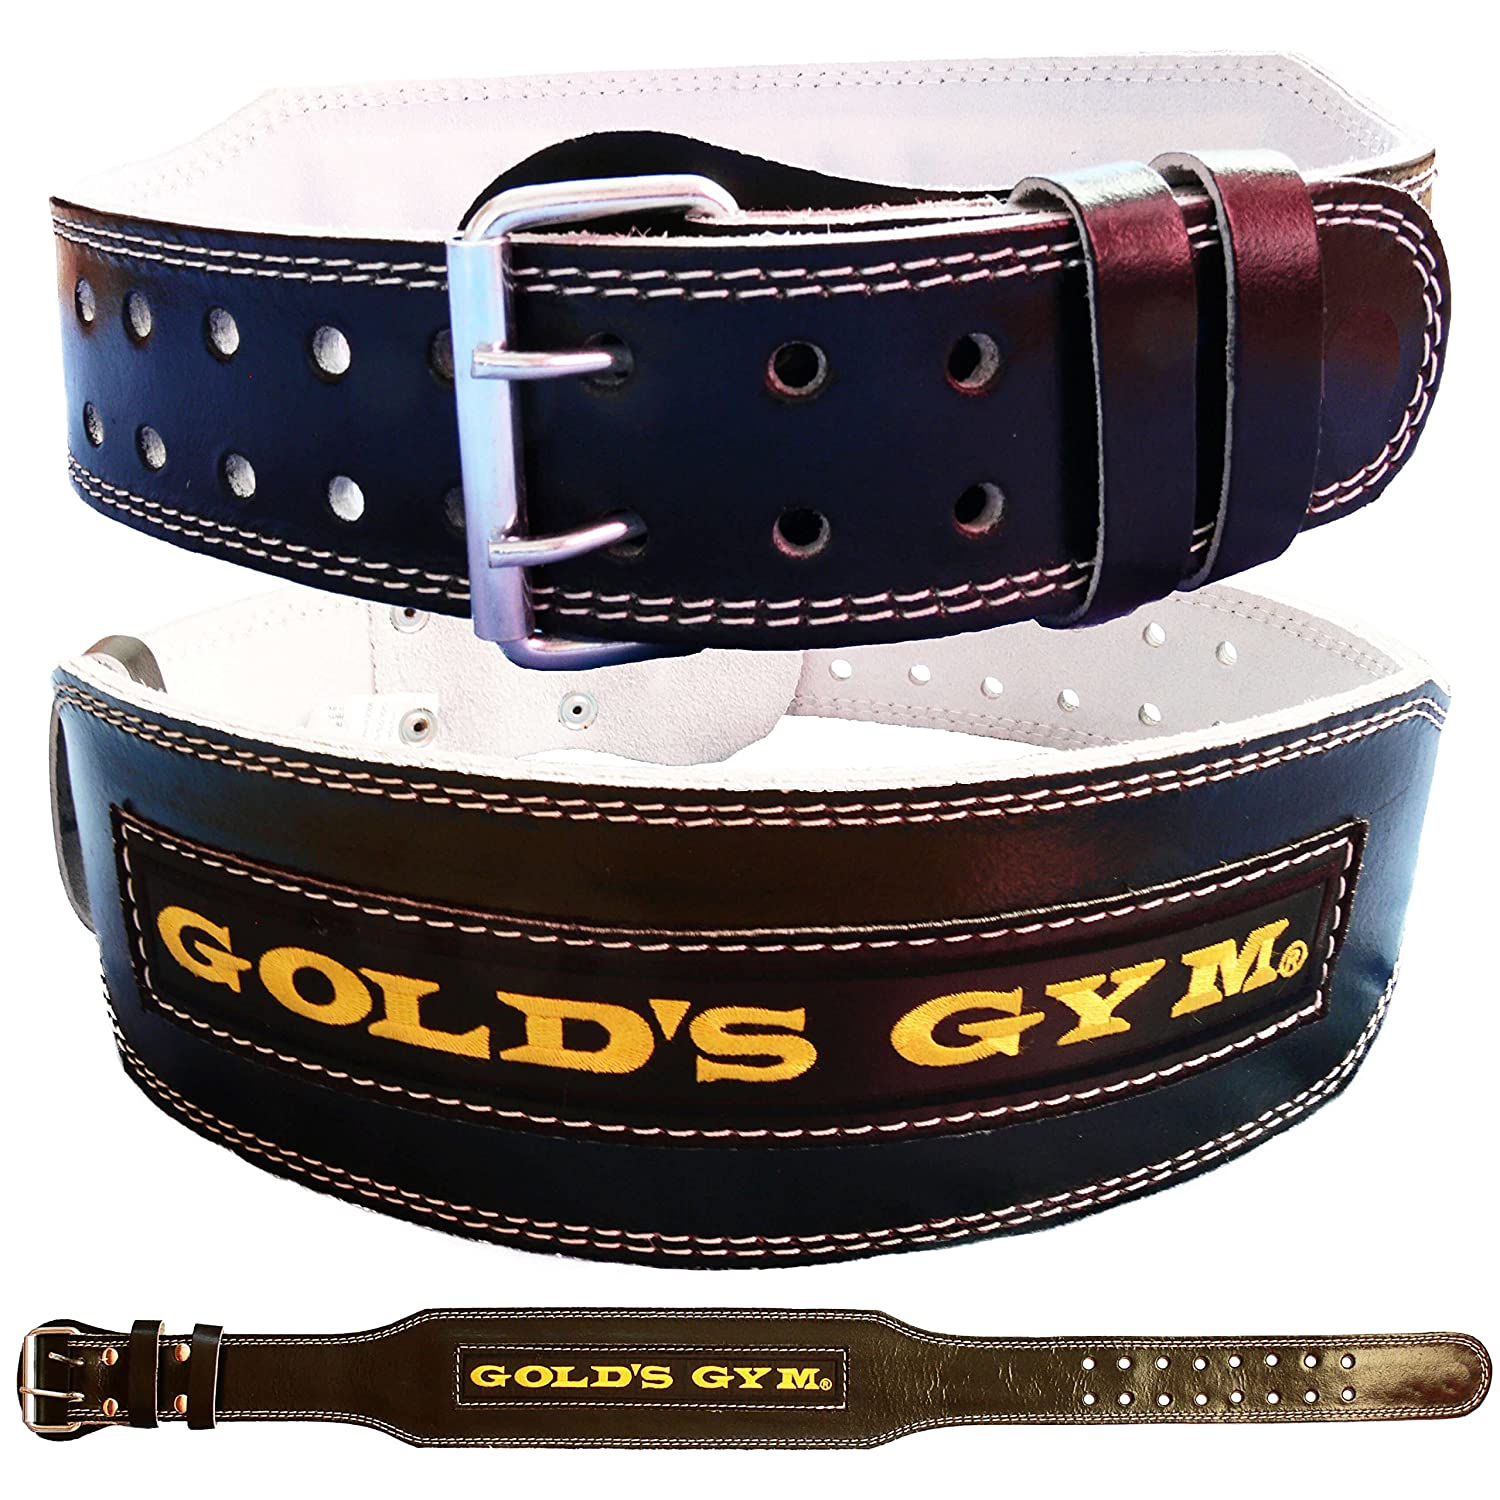 Gold's Gym Leather Weight Lifting Belt 4 Training Bodybuilding Lumbar Support Golds Gym